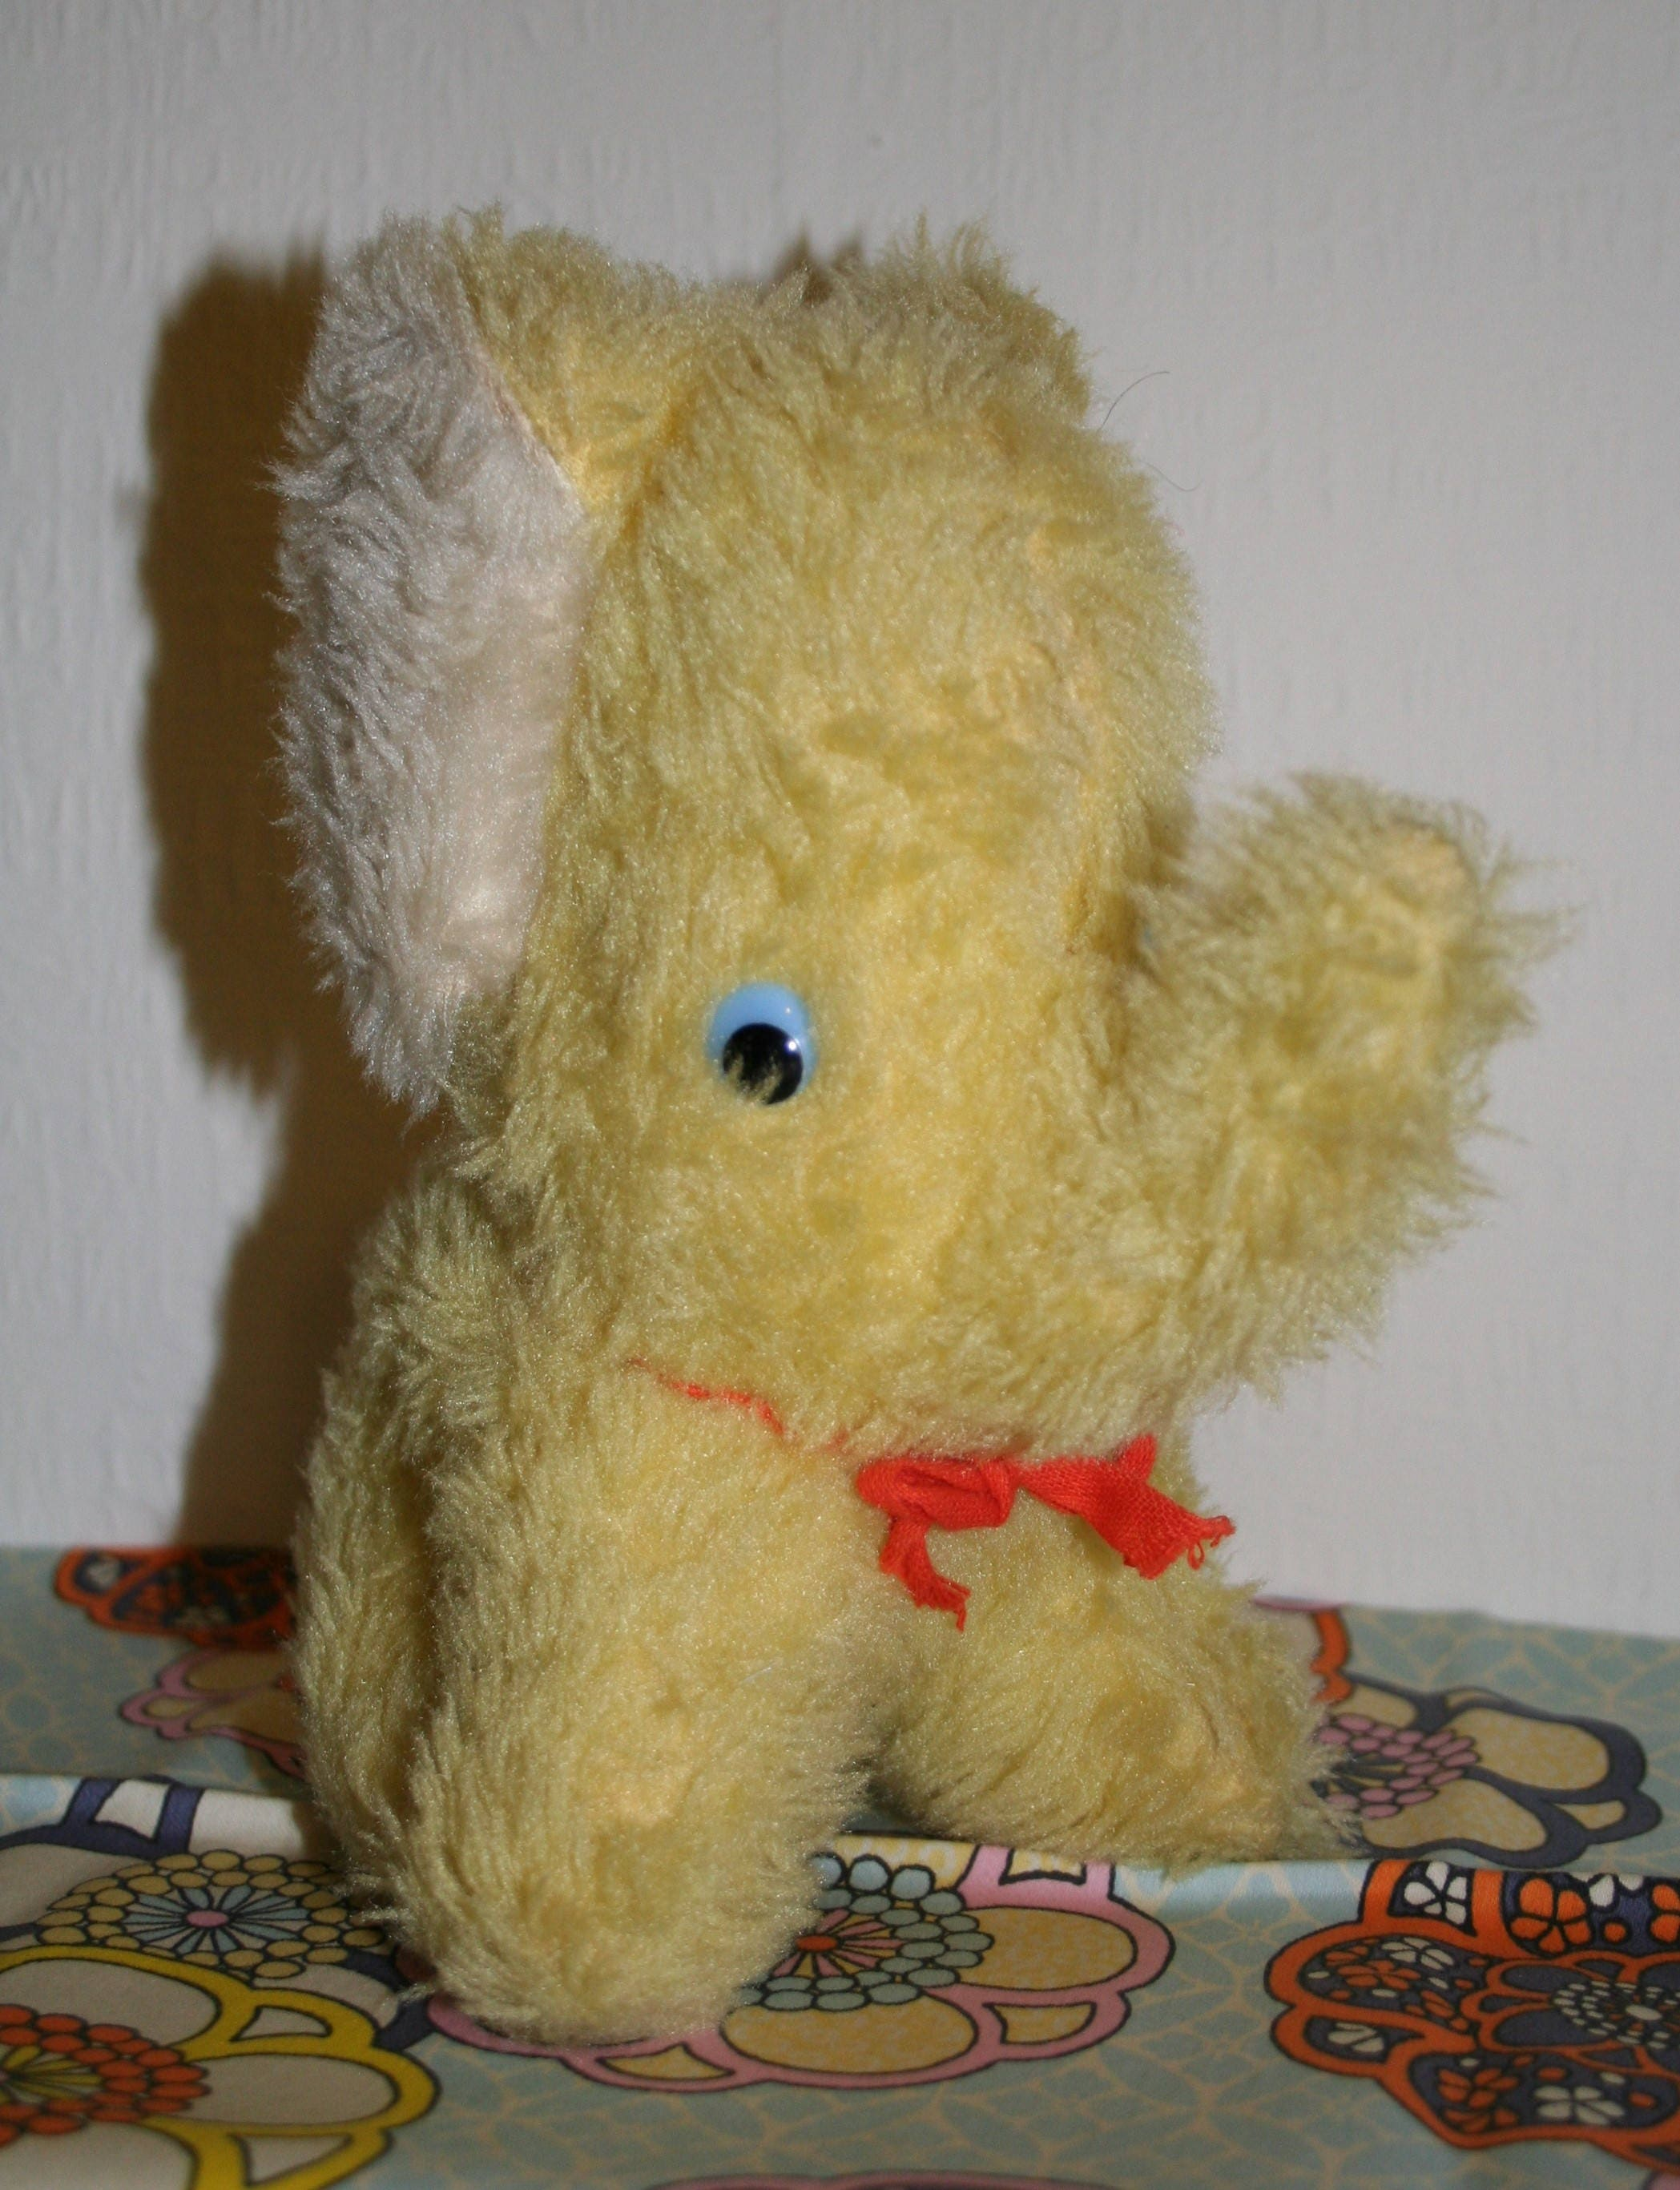 Vintage Yellow Soft Toy Elephant 1960s 1970s Retro MCM Pedigree Made In Ireland Plush Old Rustic Animal Cuddly Plushie